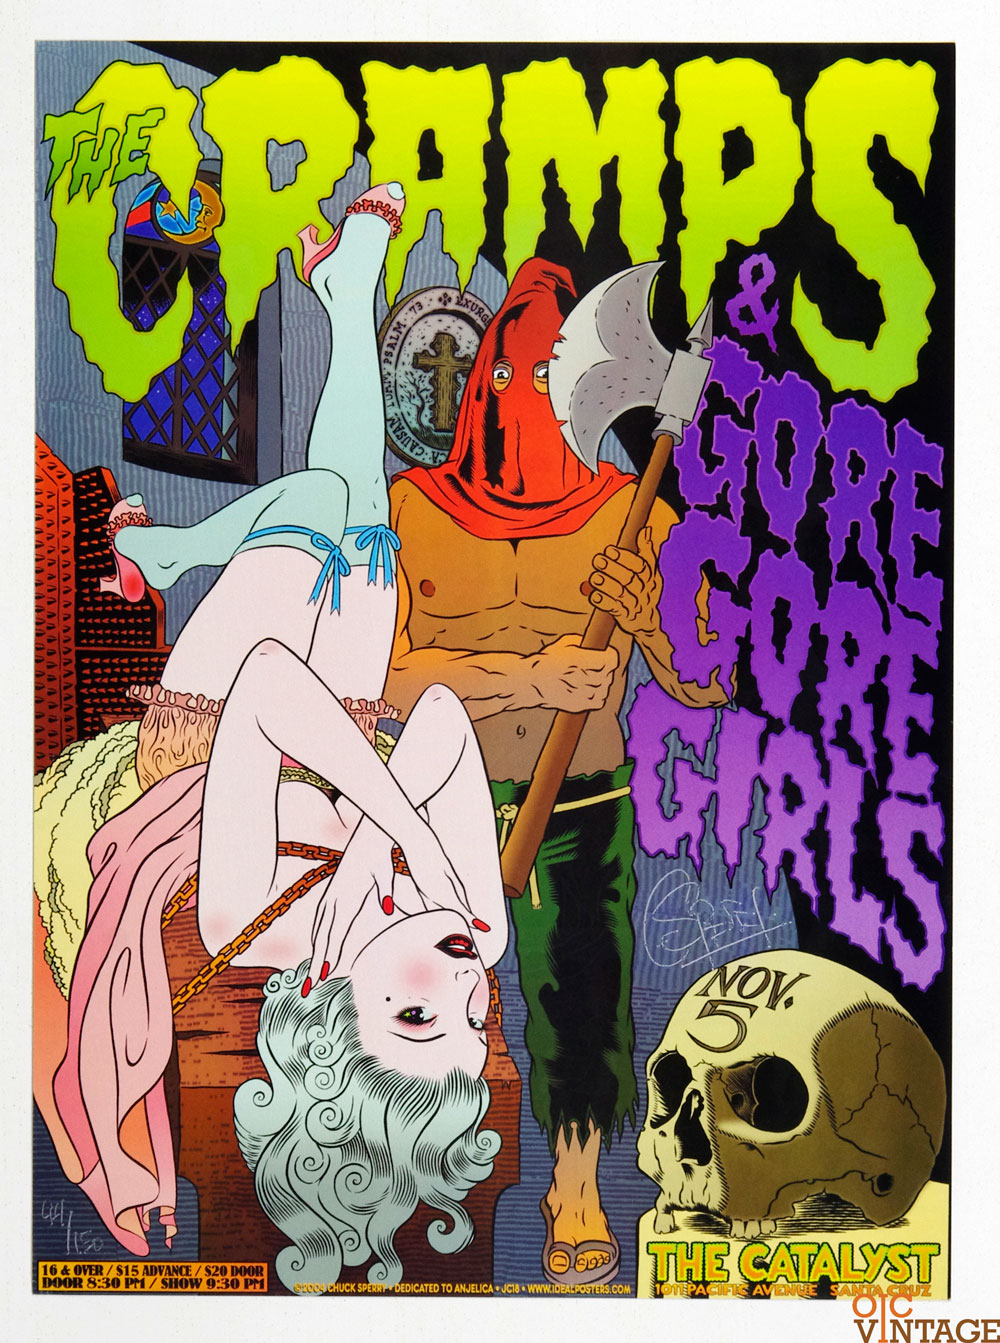 Cramps Poster 2005 Nov 5 The Catalyst Santa Cruz Chuck Sperry signed numbered